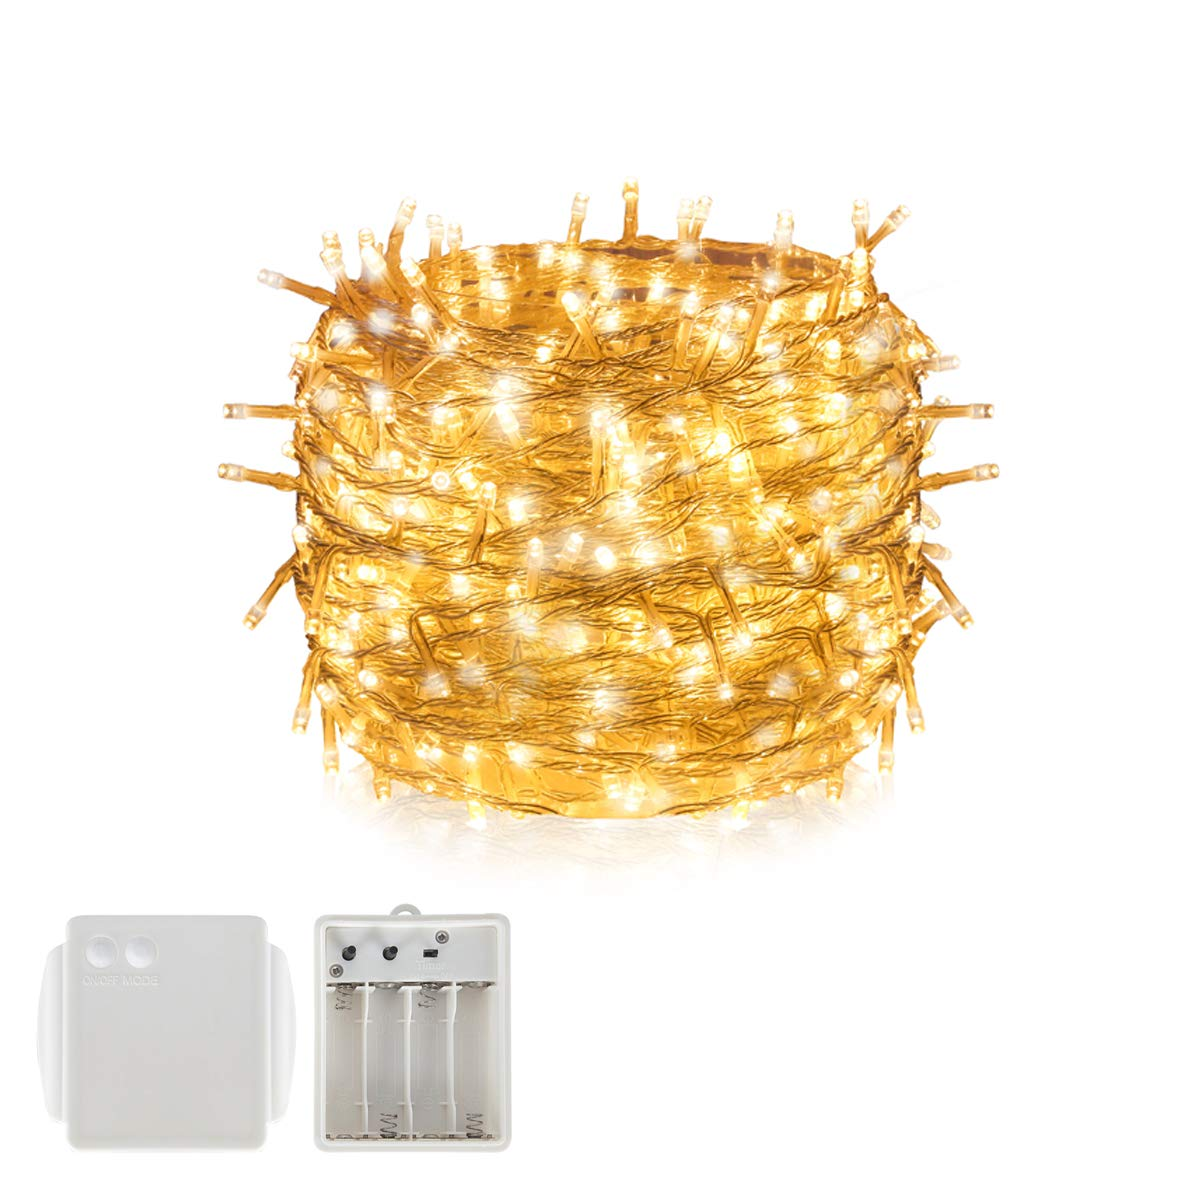 Battery LED Light String Fairy Light, Tersely Fairy Lights Christmas Xmas Garden Party Wedding Decoration (8 Light Modes, Memory Function) (300 LED 30M) Profits Technology. co Limited